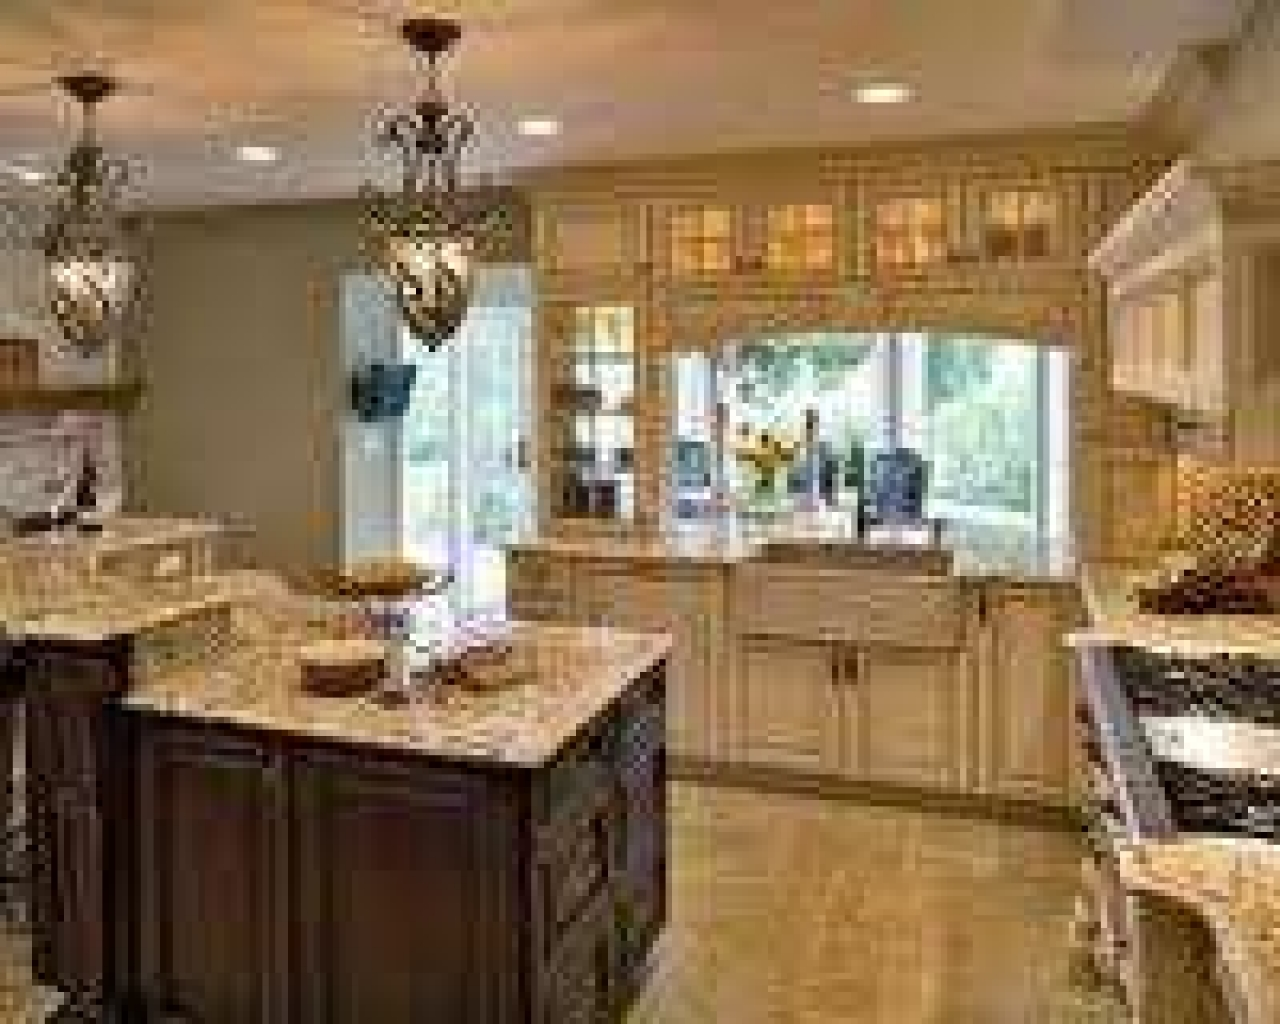 Free download Tuscan kitchen style design ideas cabinets ...